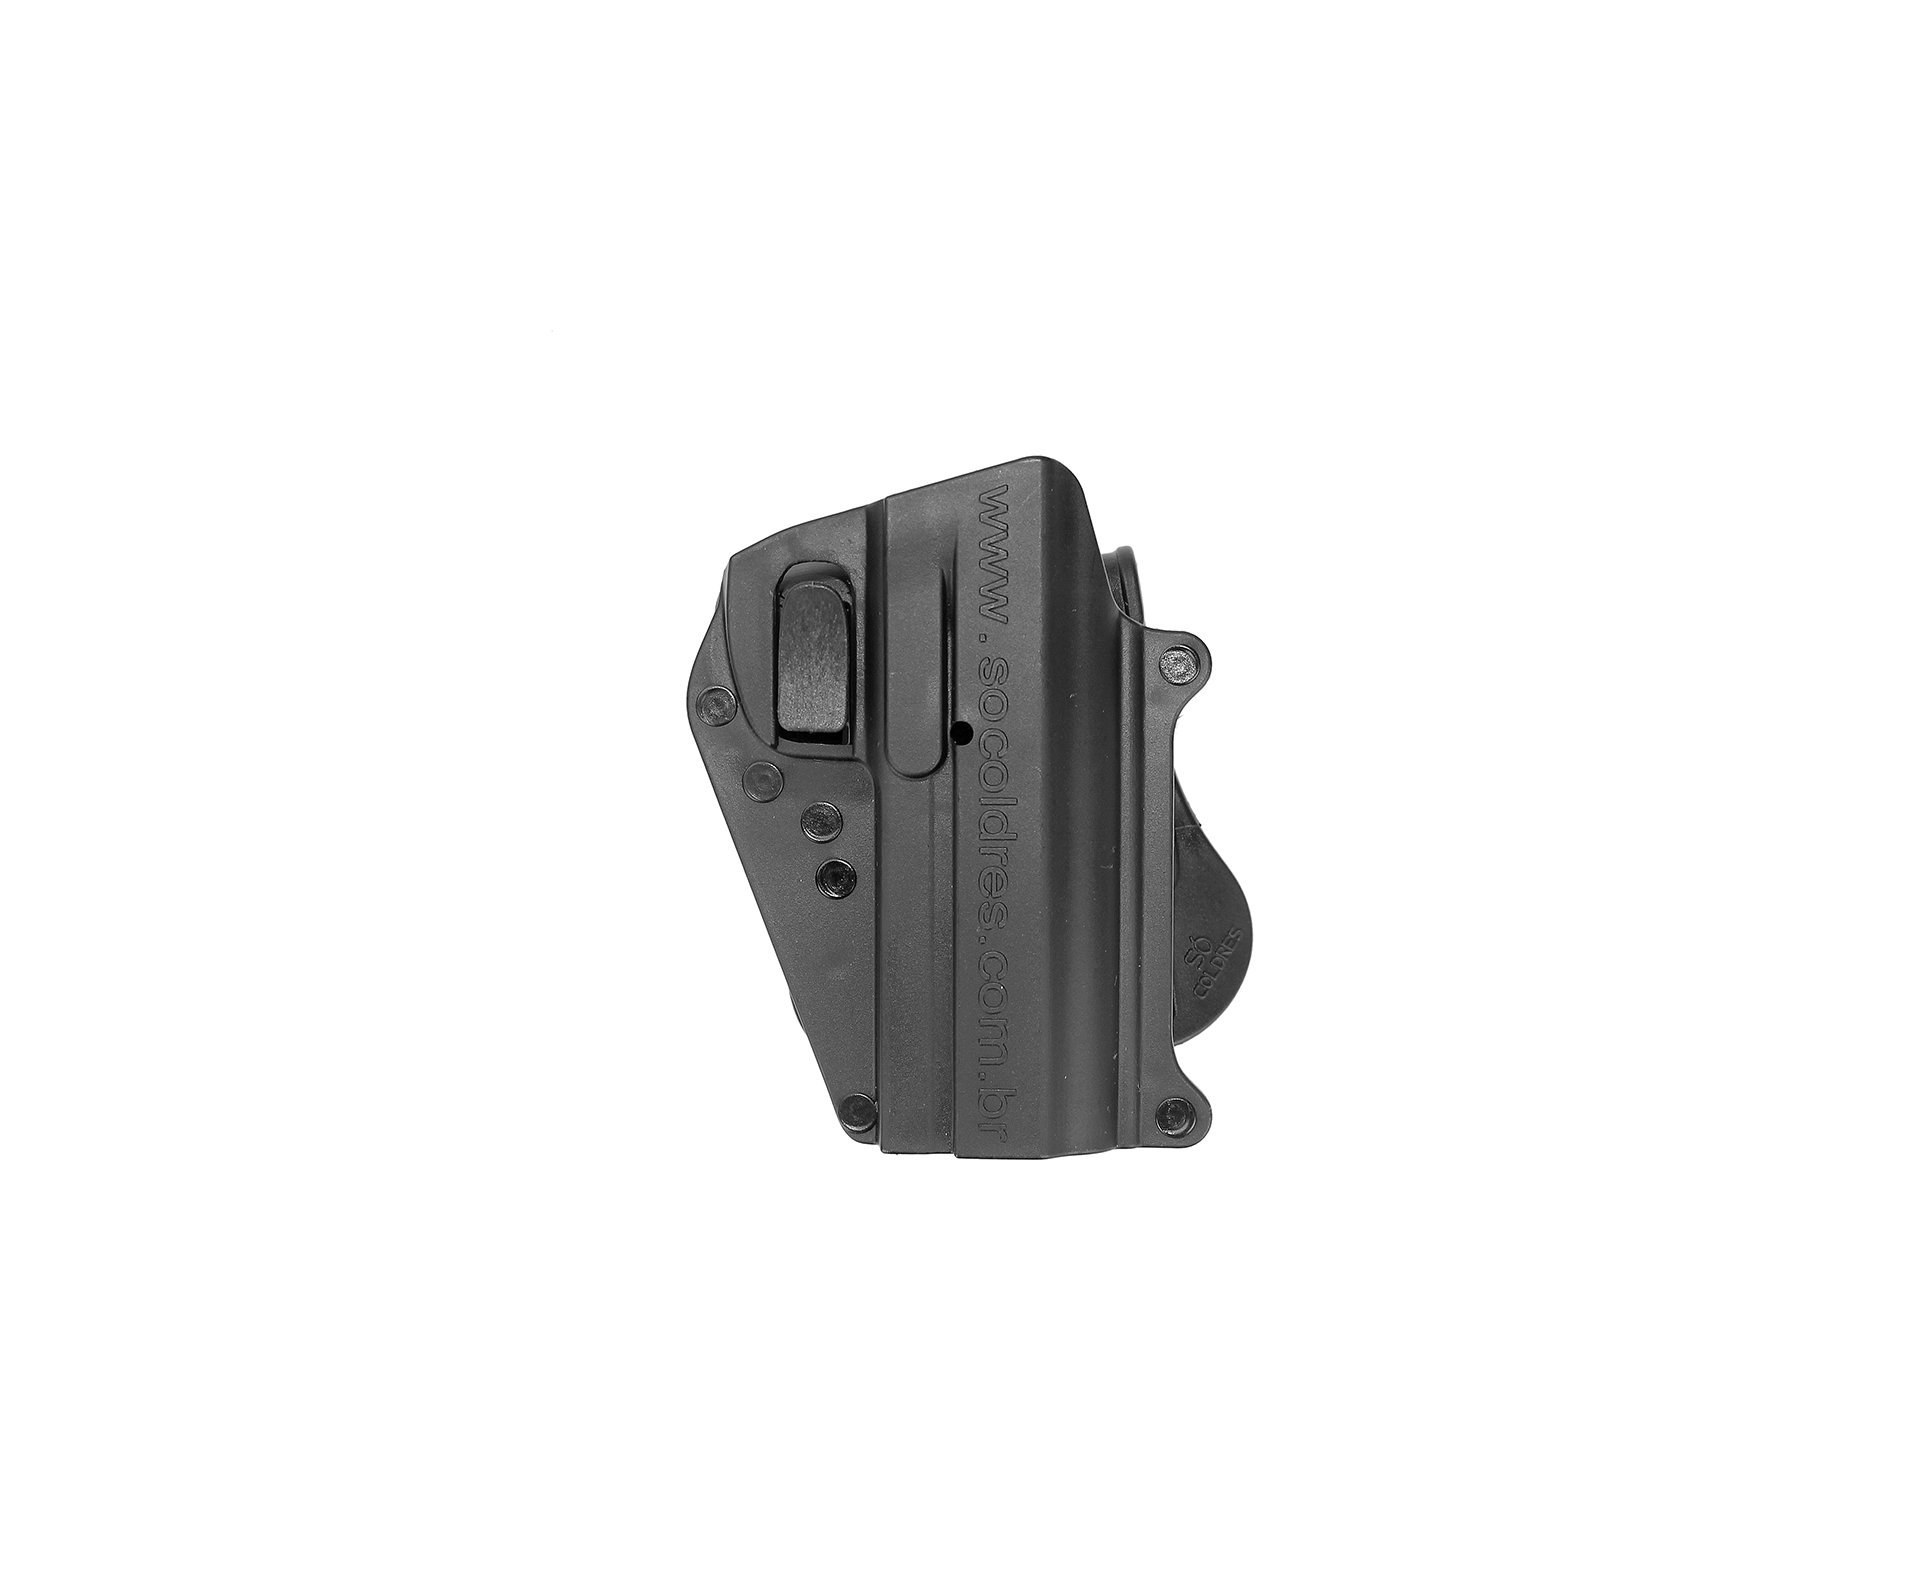 Coldre Cintura Para Pistola Imbel M1d 1,2,5 E Pt100 Destro So Coldres